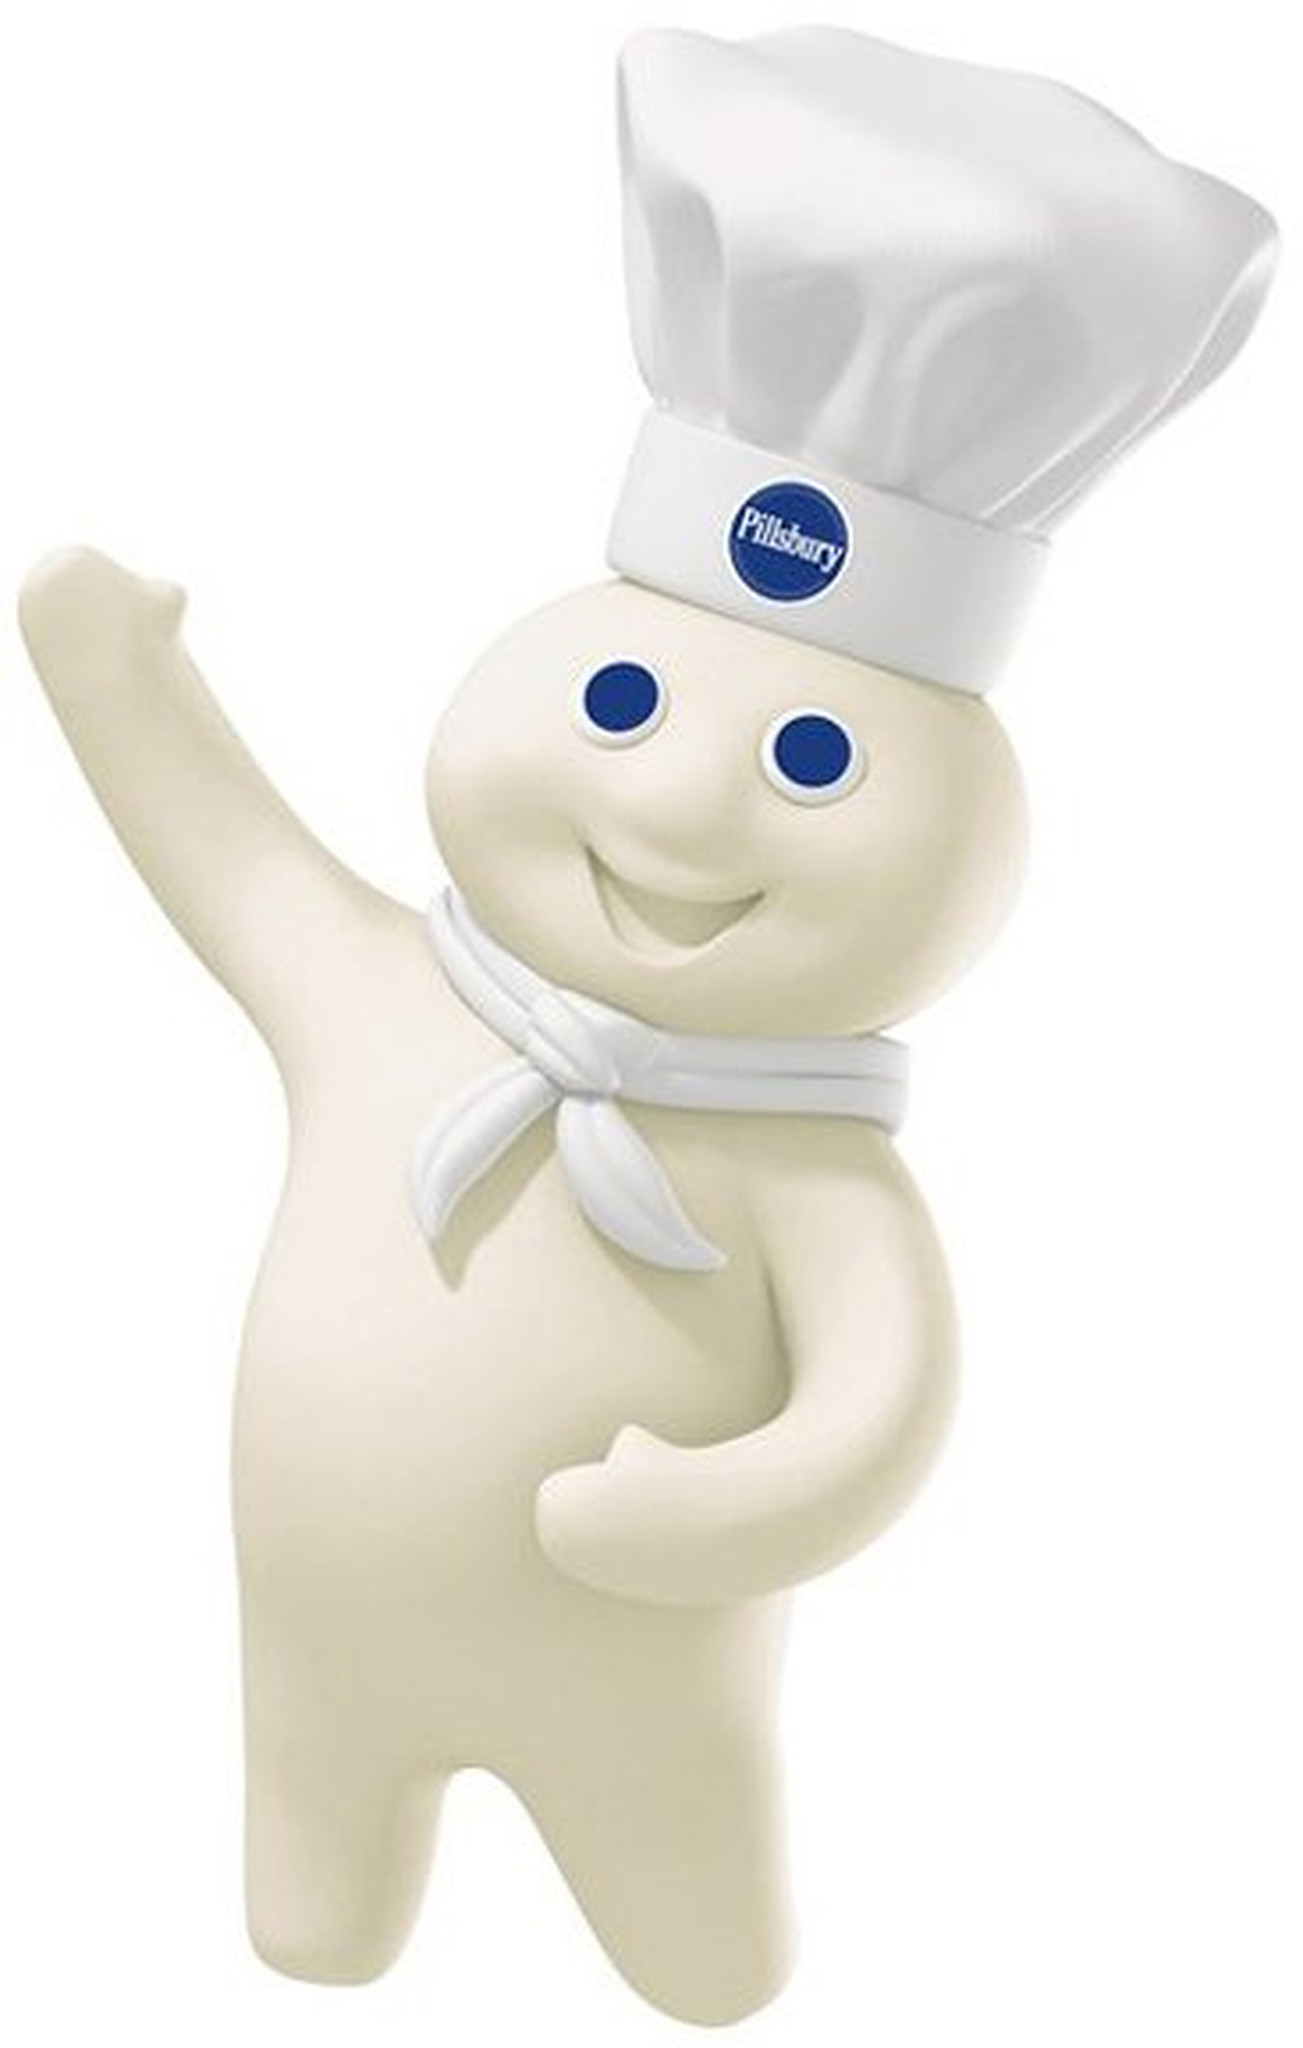 pillsbury doughboy dough boy guy meme jar swear biscuits dead biscuit son mascot universe children smash lawl bros poppin fresh